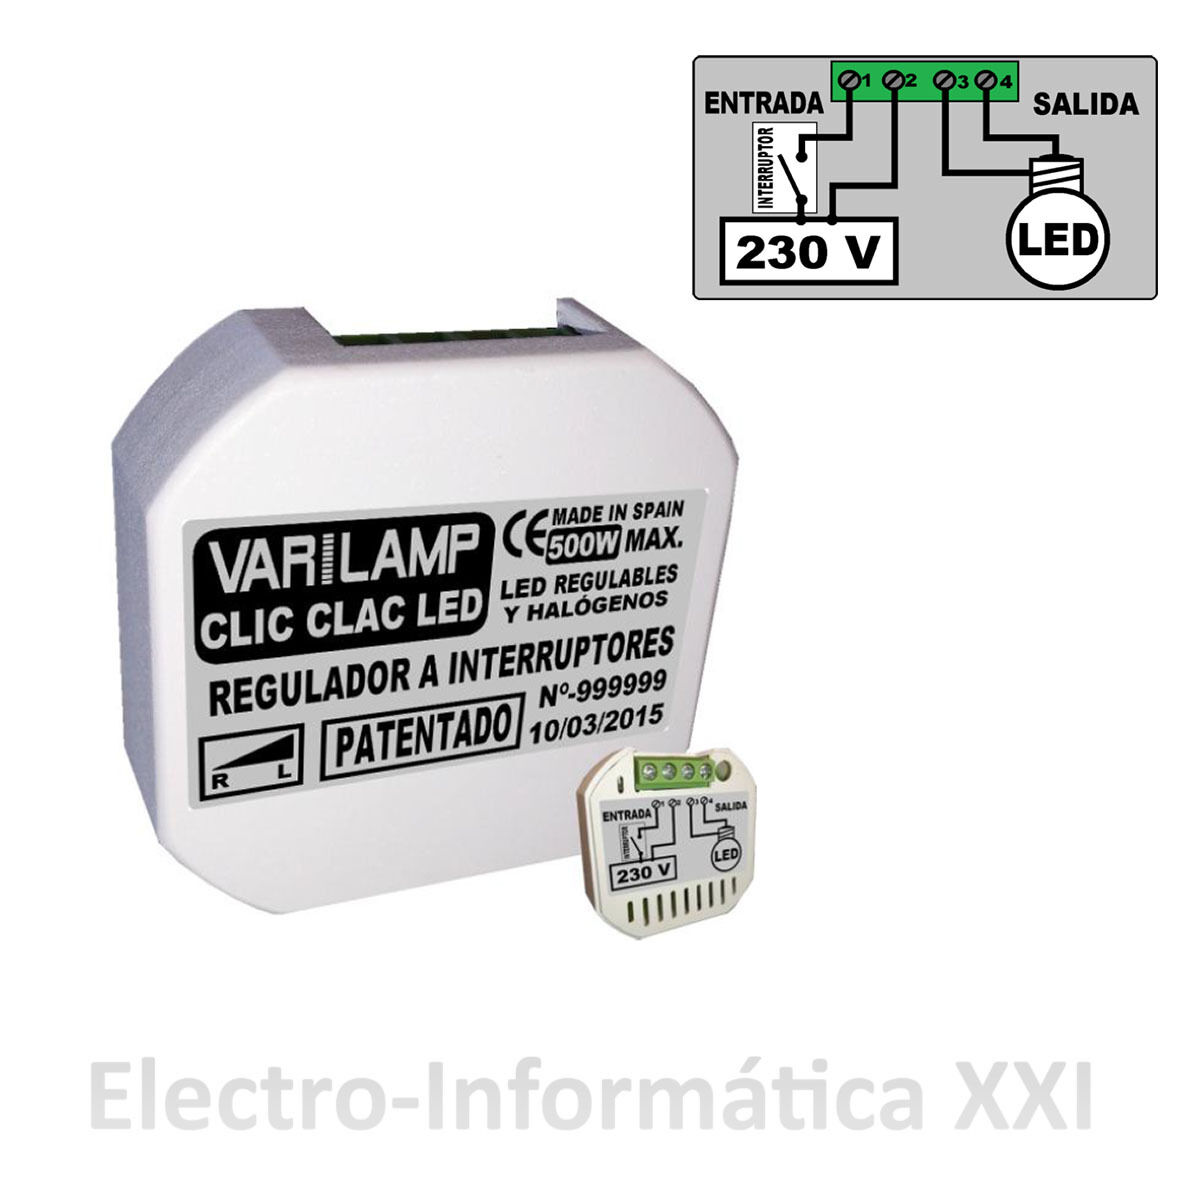 Regulador de intensidad clic clac led 100w varilamp - Regulador intensidad luz ...